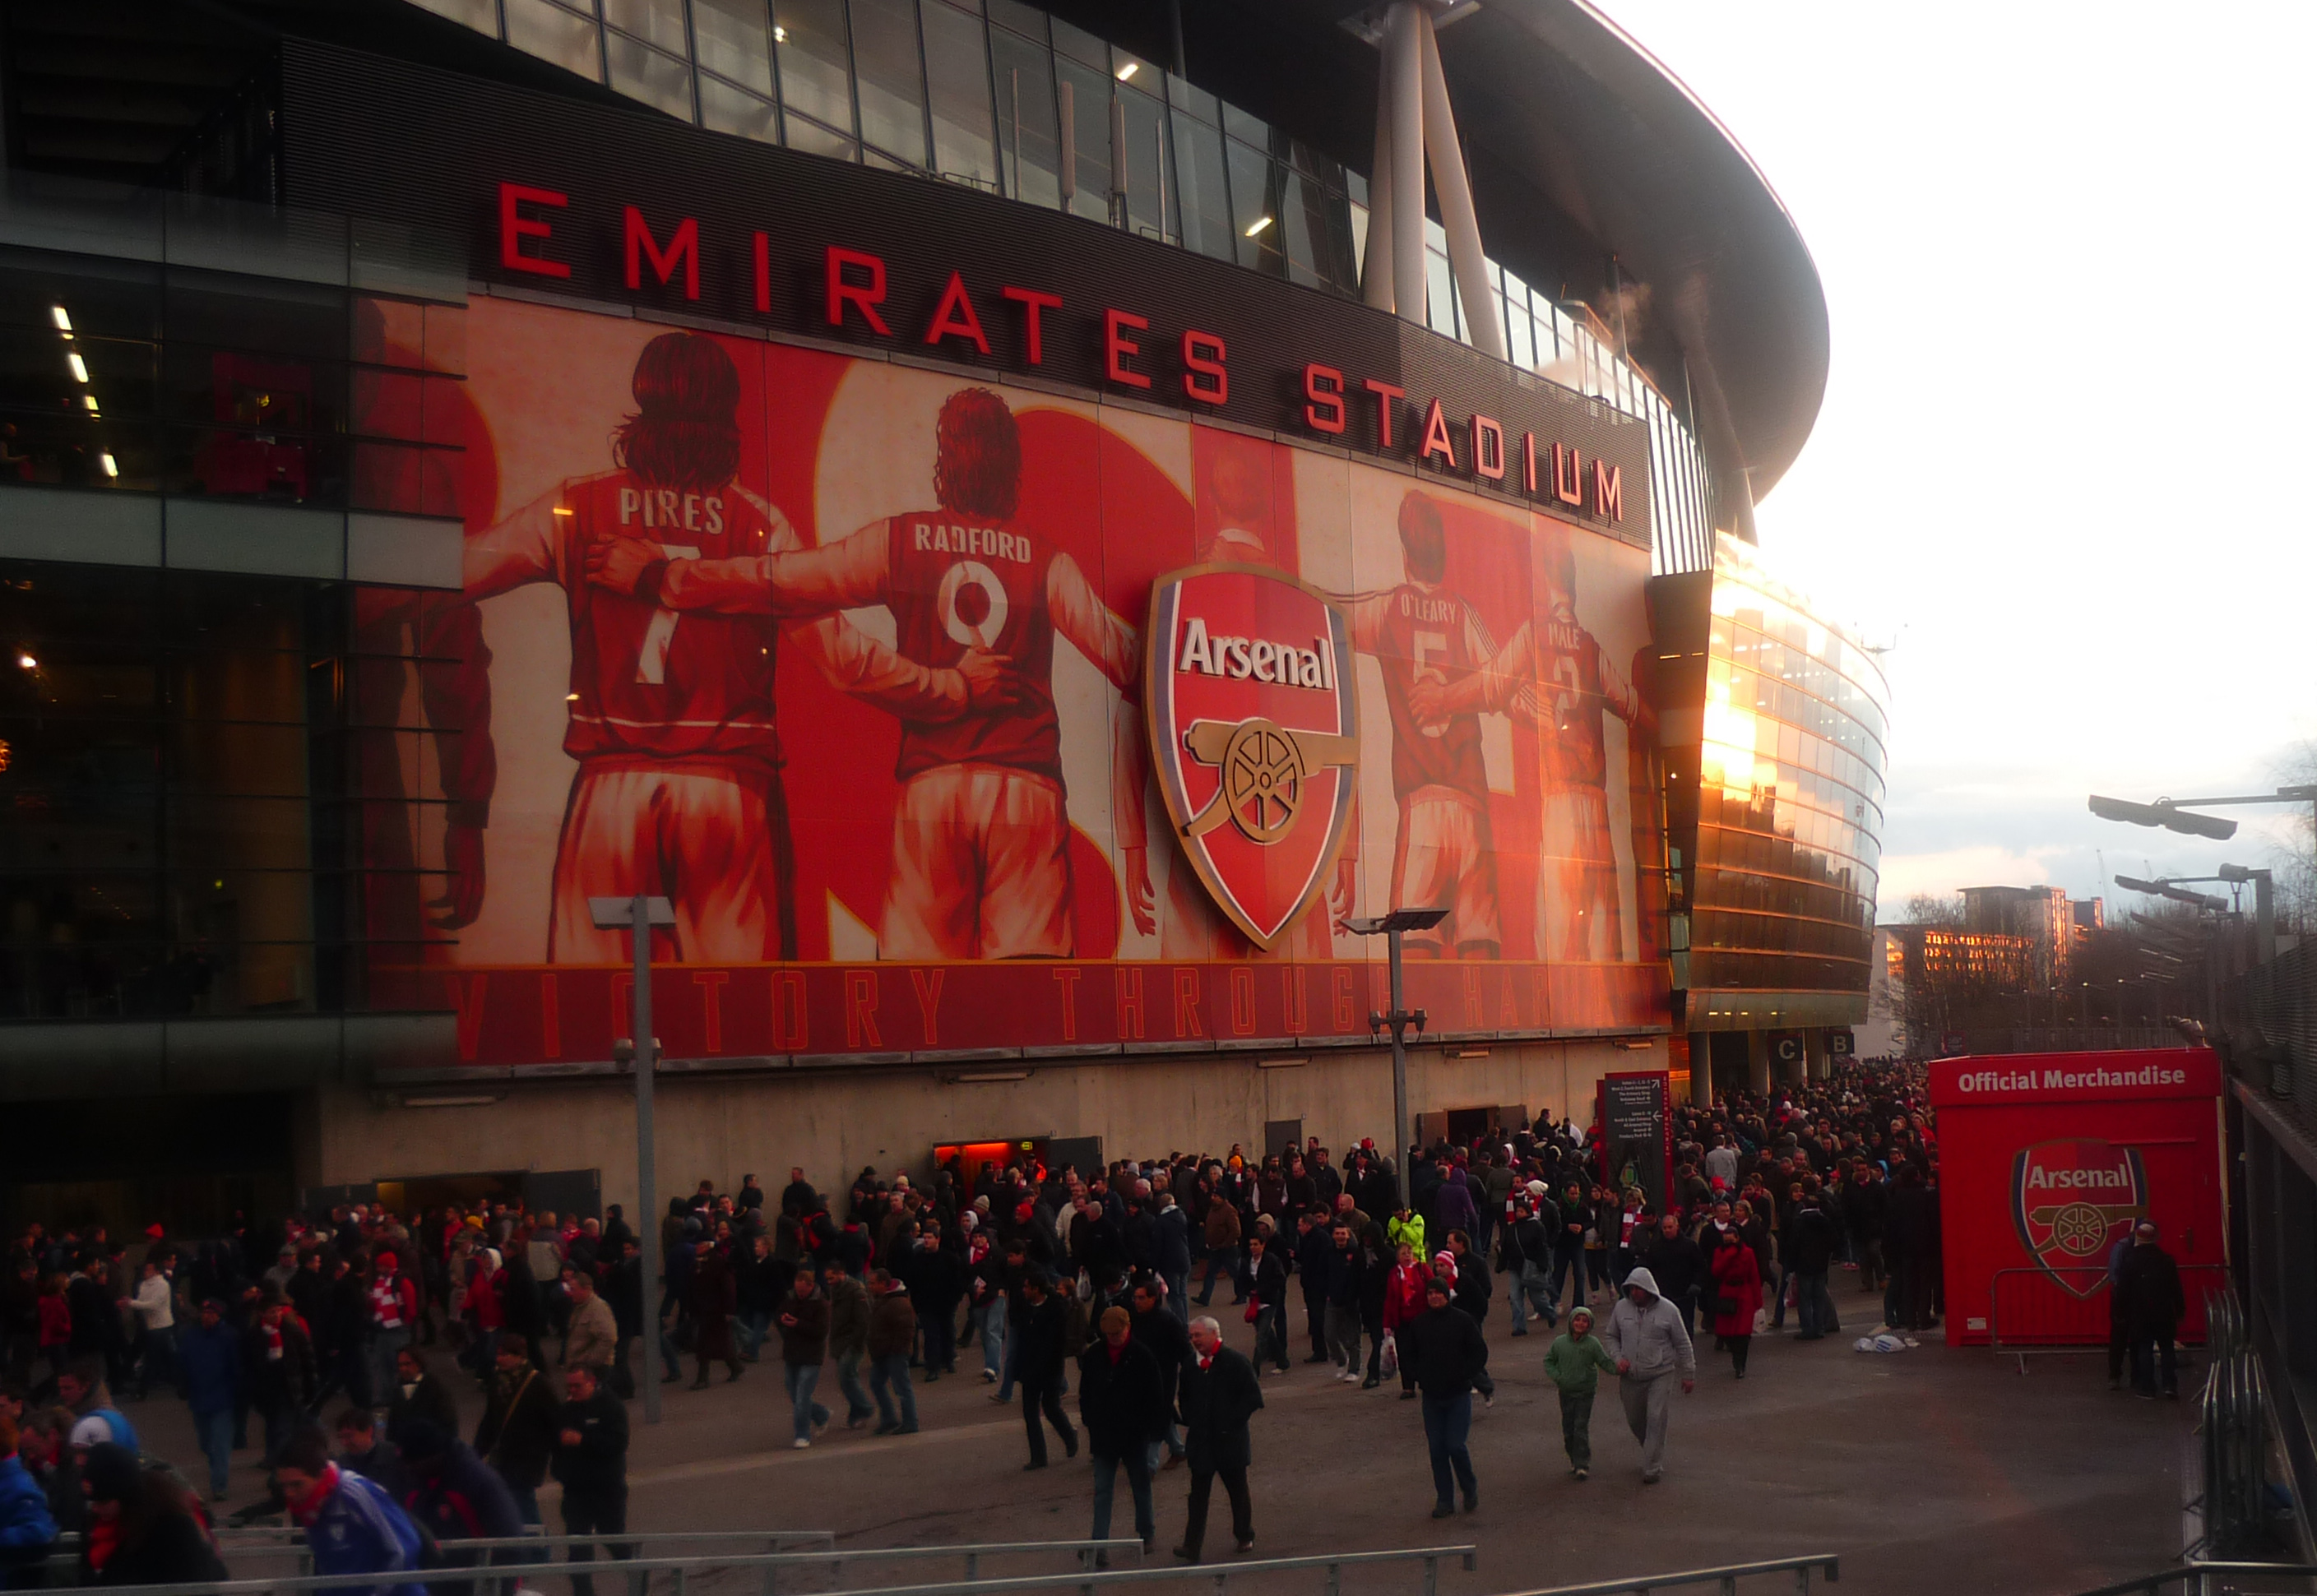 Emirates stadium for Emirates stadium mural